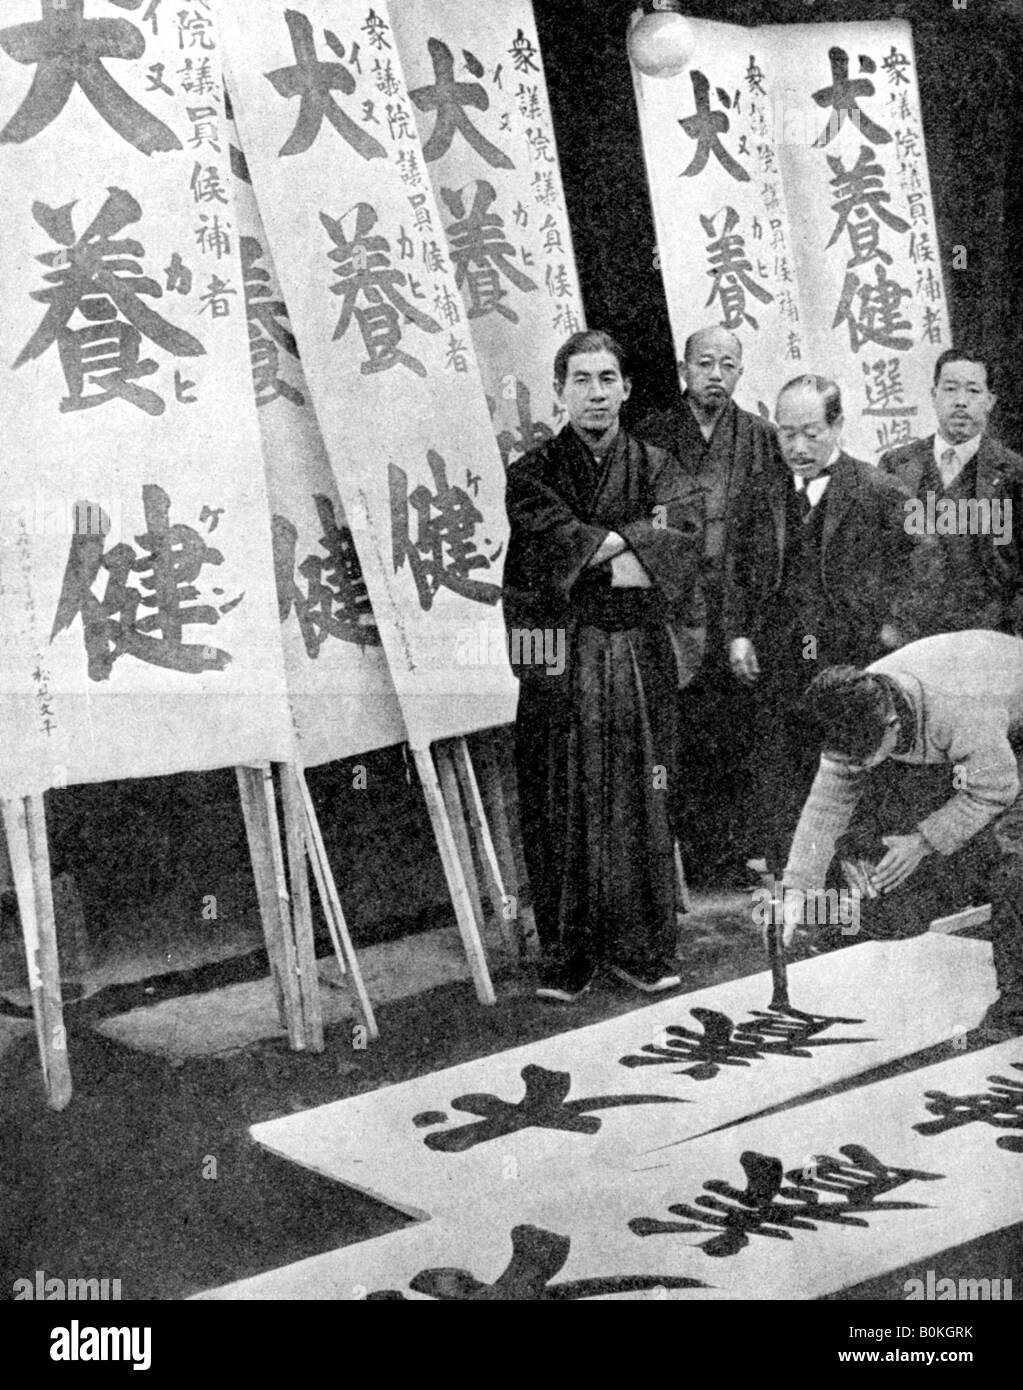 Printing election posters in Japan, 1936. Artist: Fox Photos - Stock Image